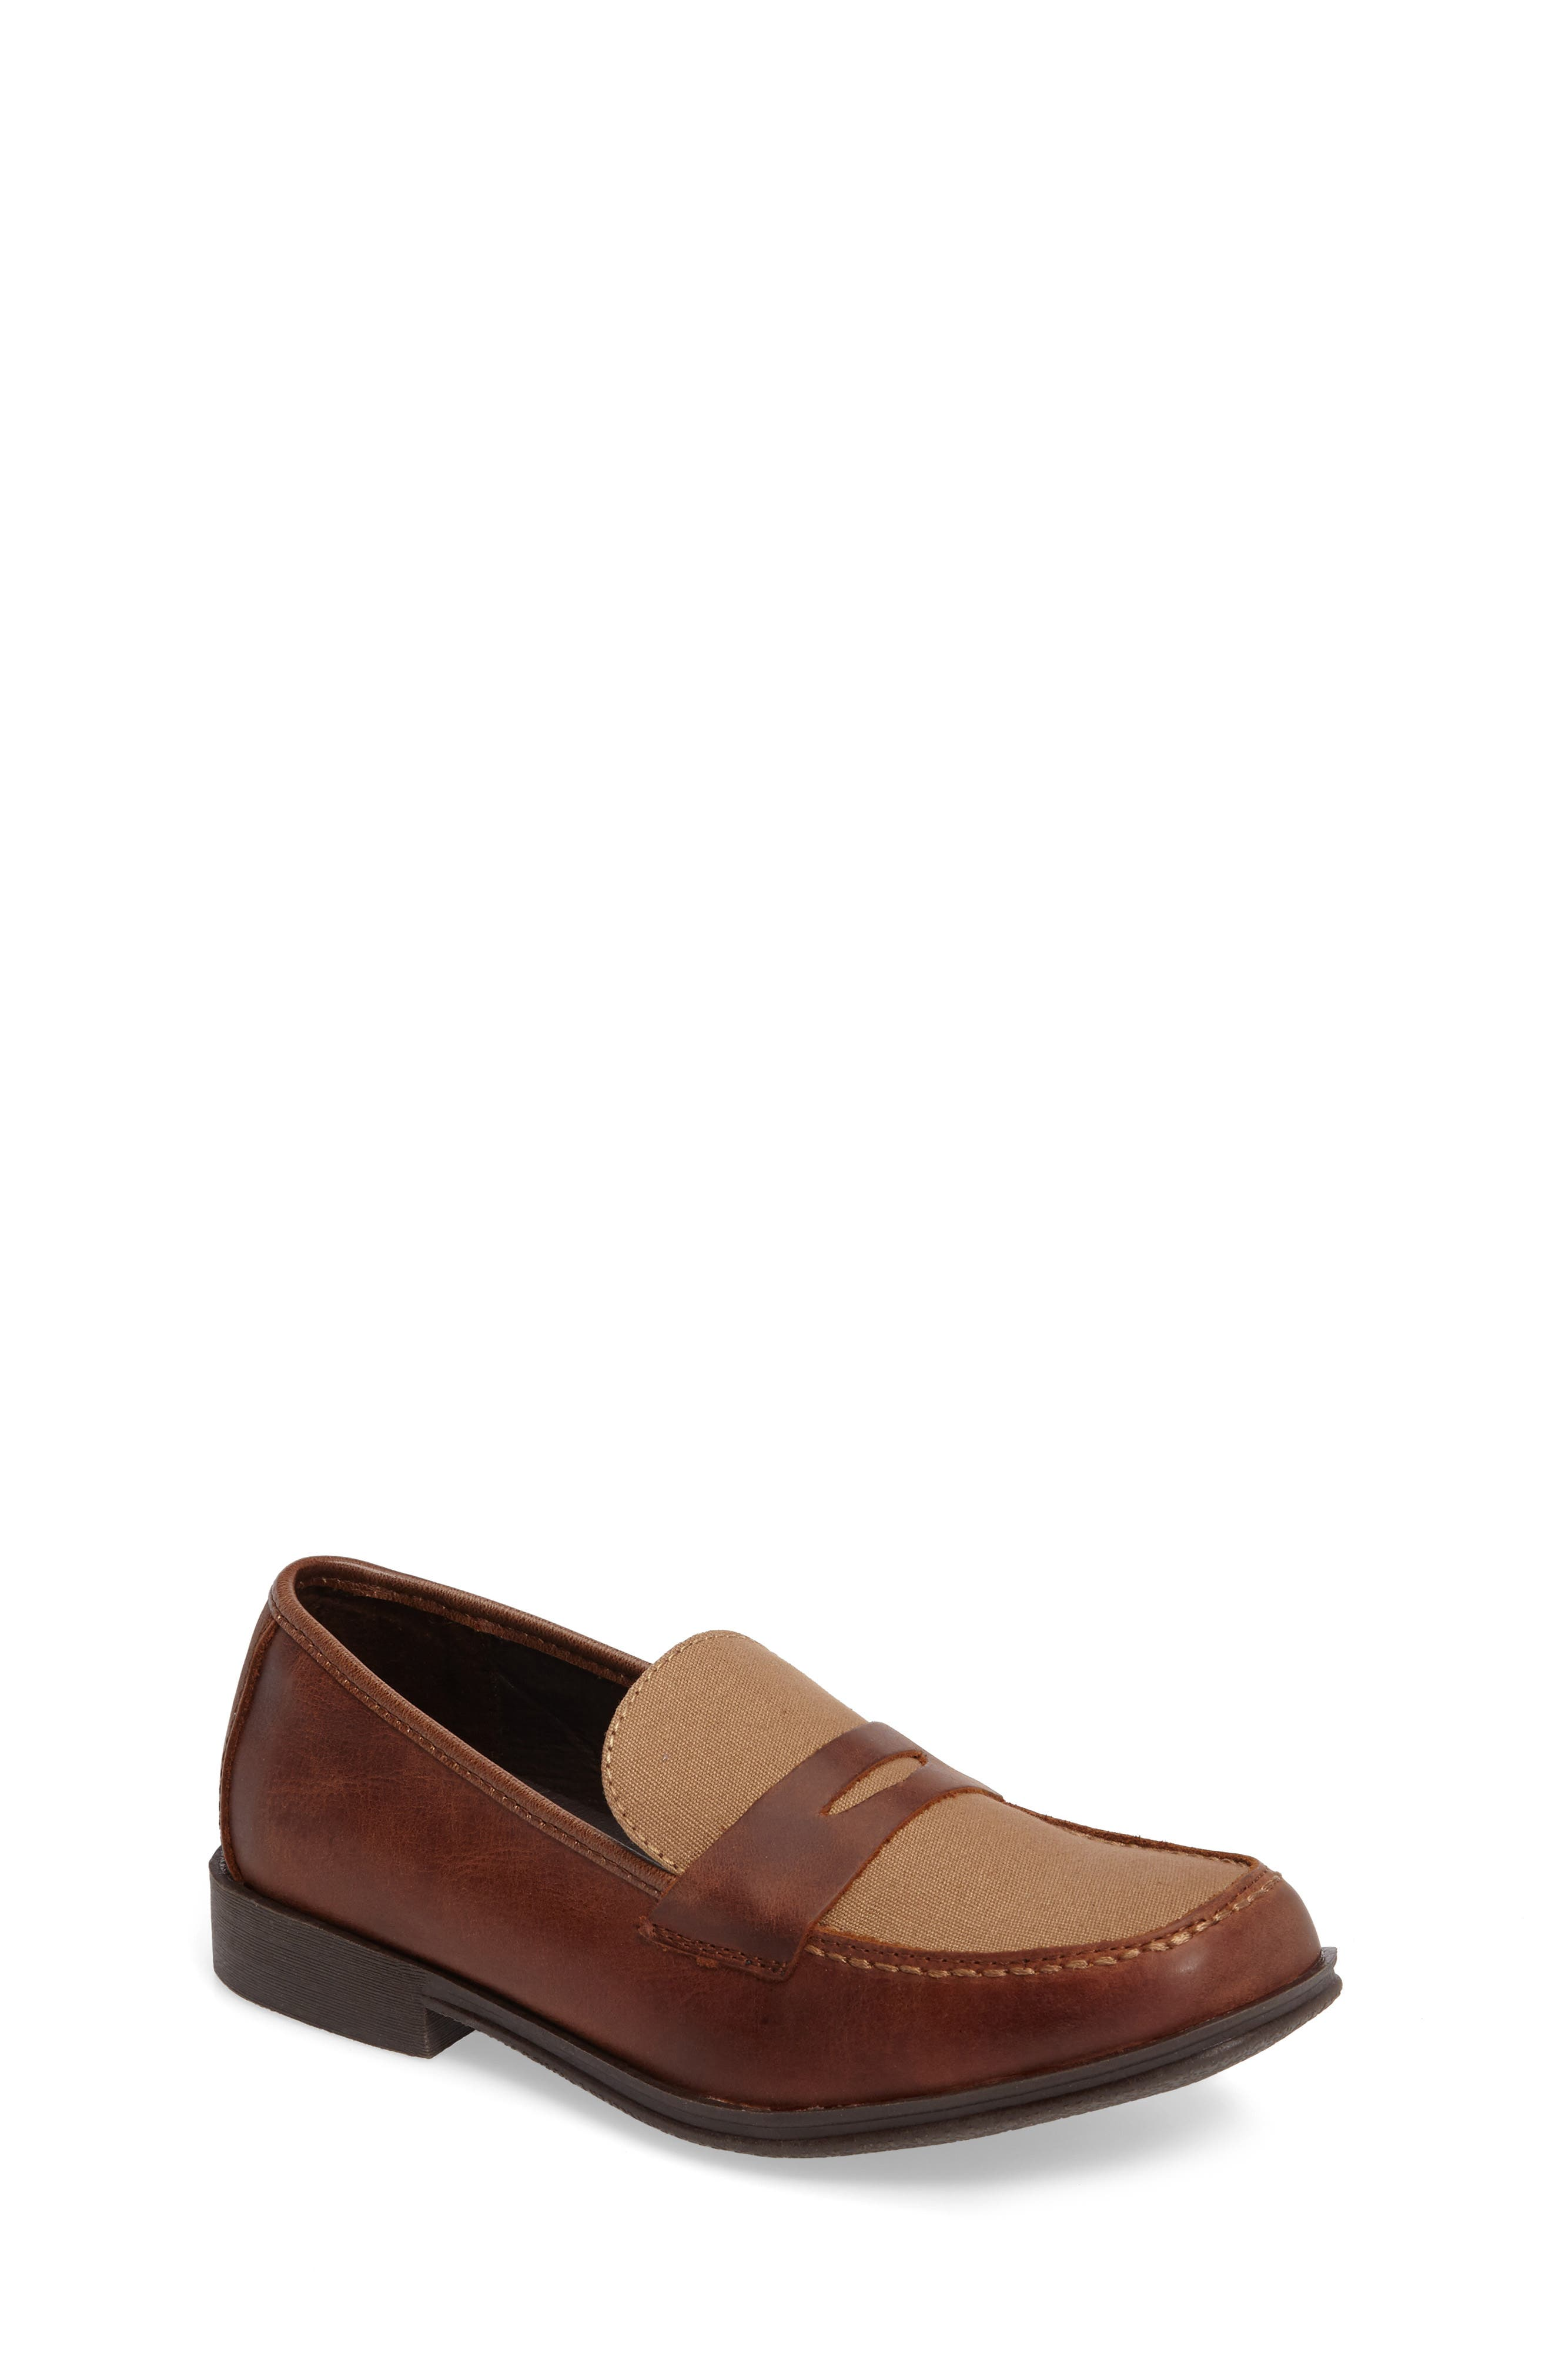 Club Loft Loafer,                             Main thumbnail 1, color,                             Tan/ Brown Leather